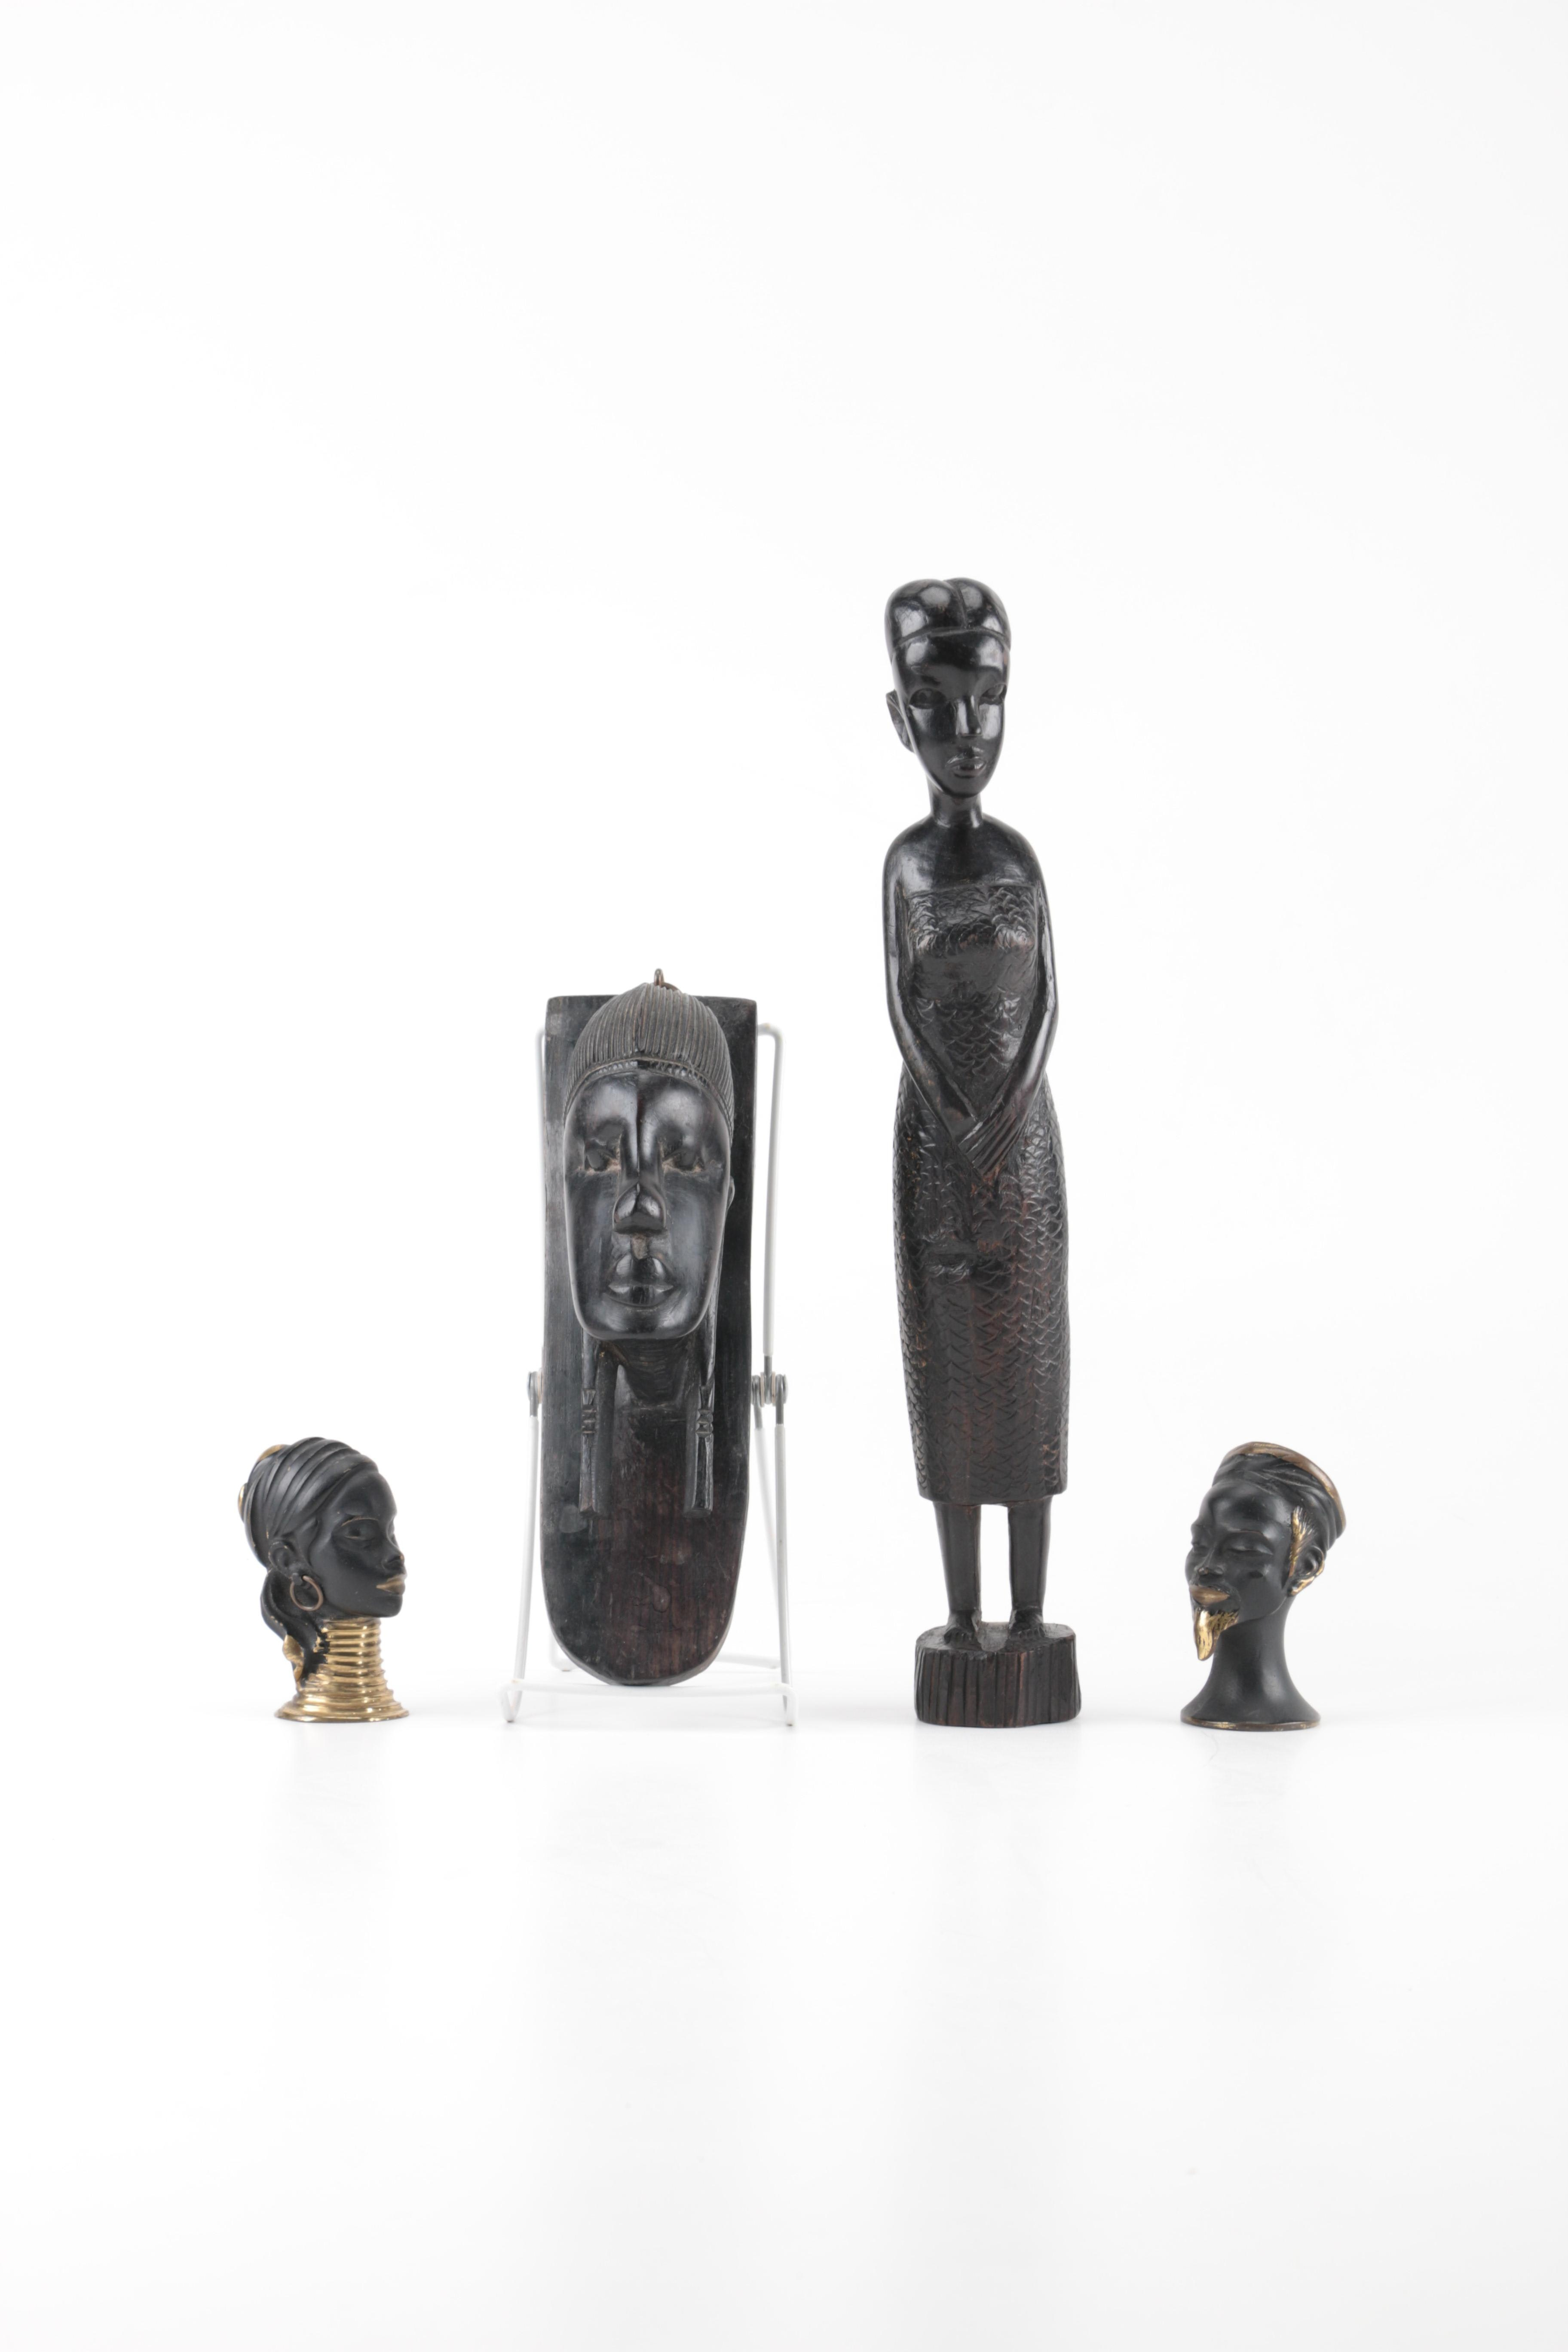 Assorted African Metal and Wood Sculptures